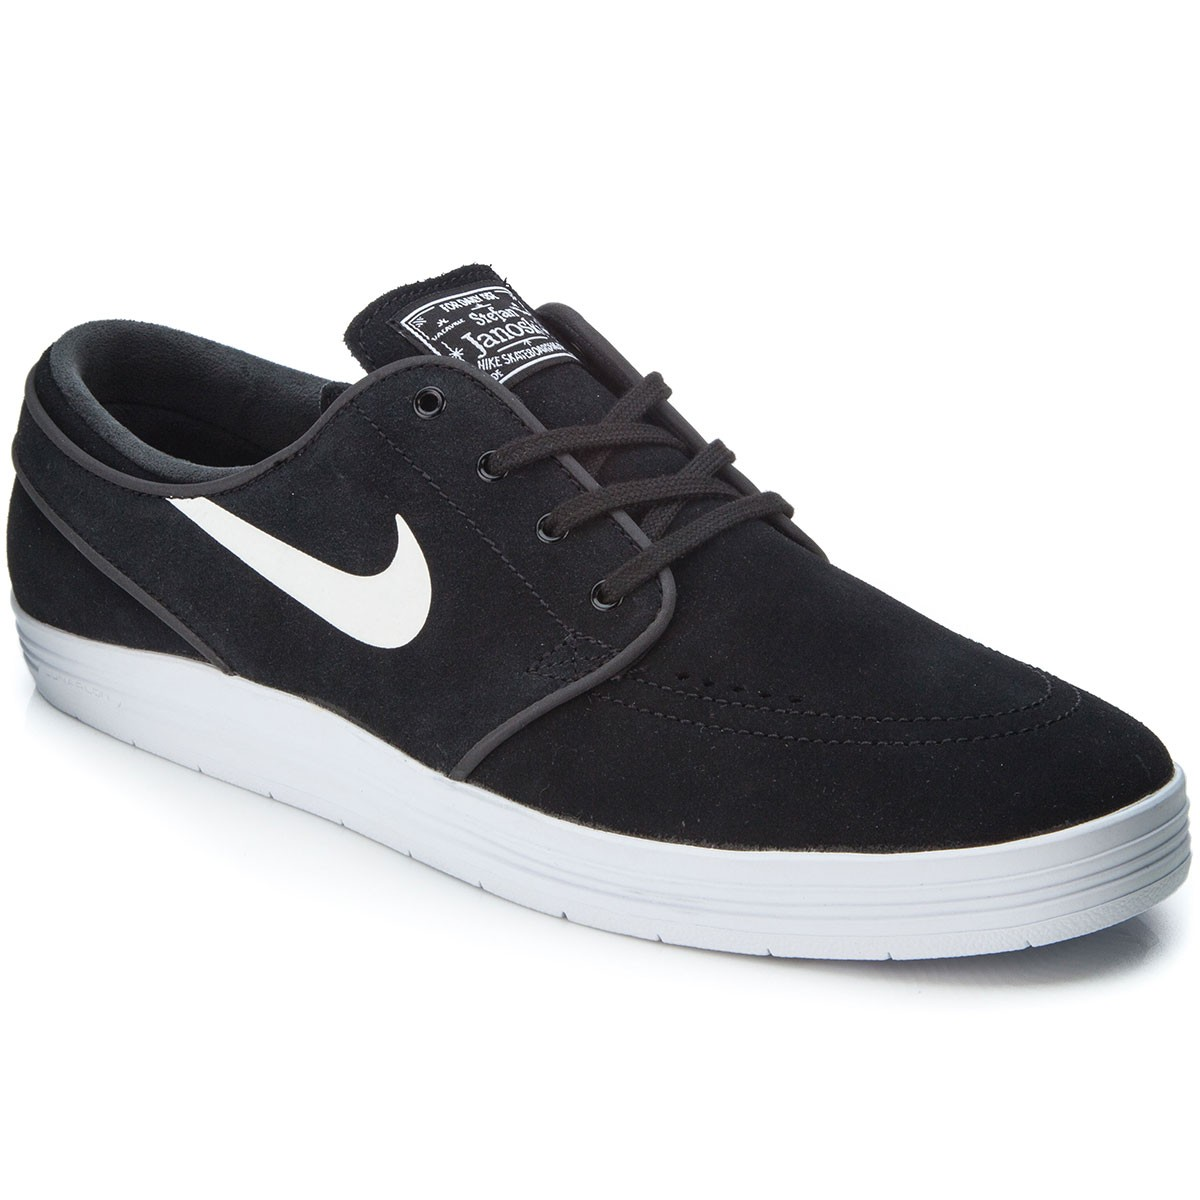 nike lunar stefan janoski shoes. Black Bedroom Furniture Sets. Home Design Ideas